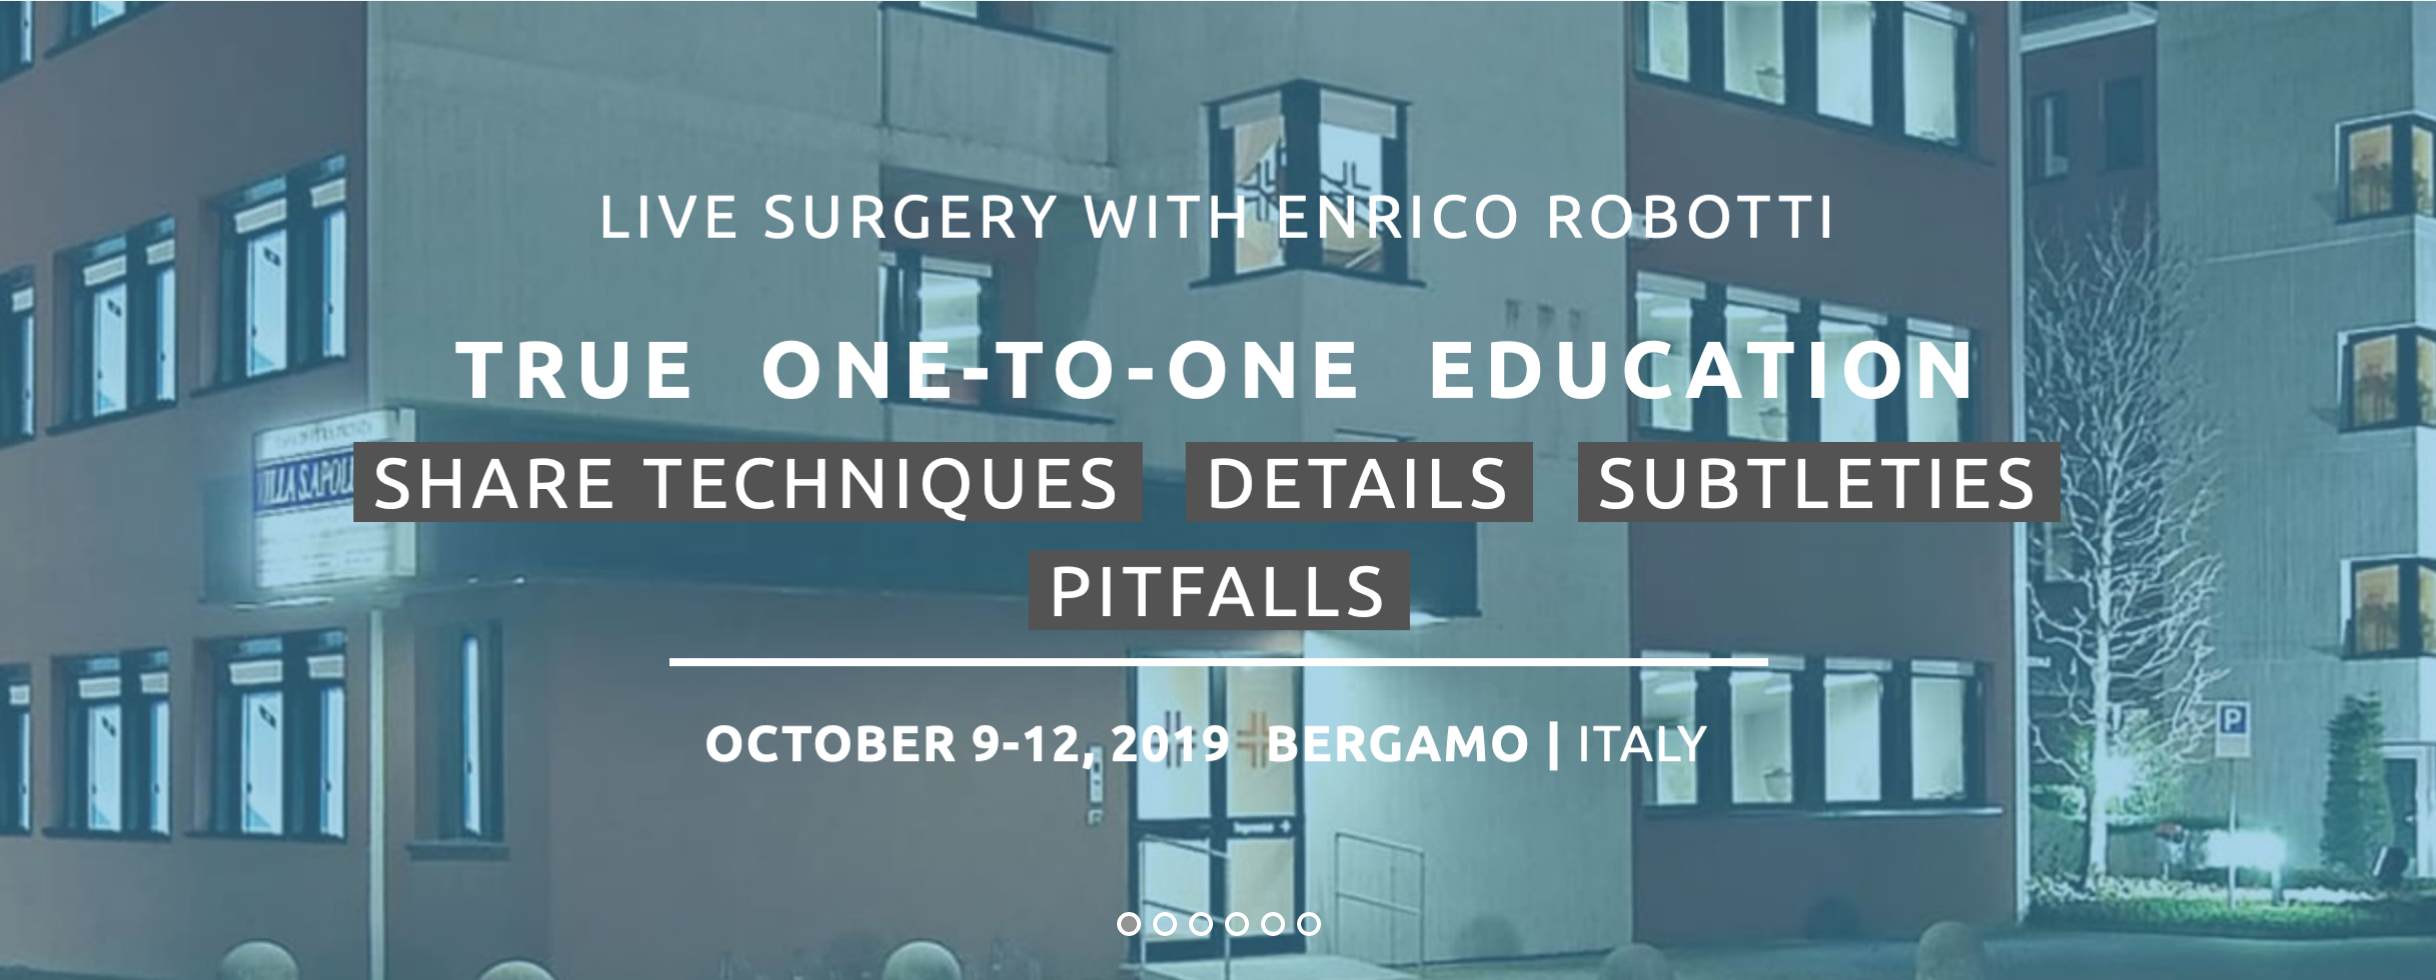 LIve Surgery With Enrico Robotti